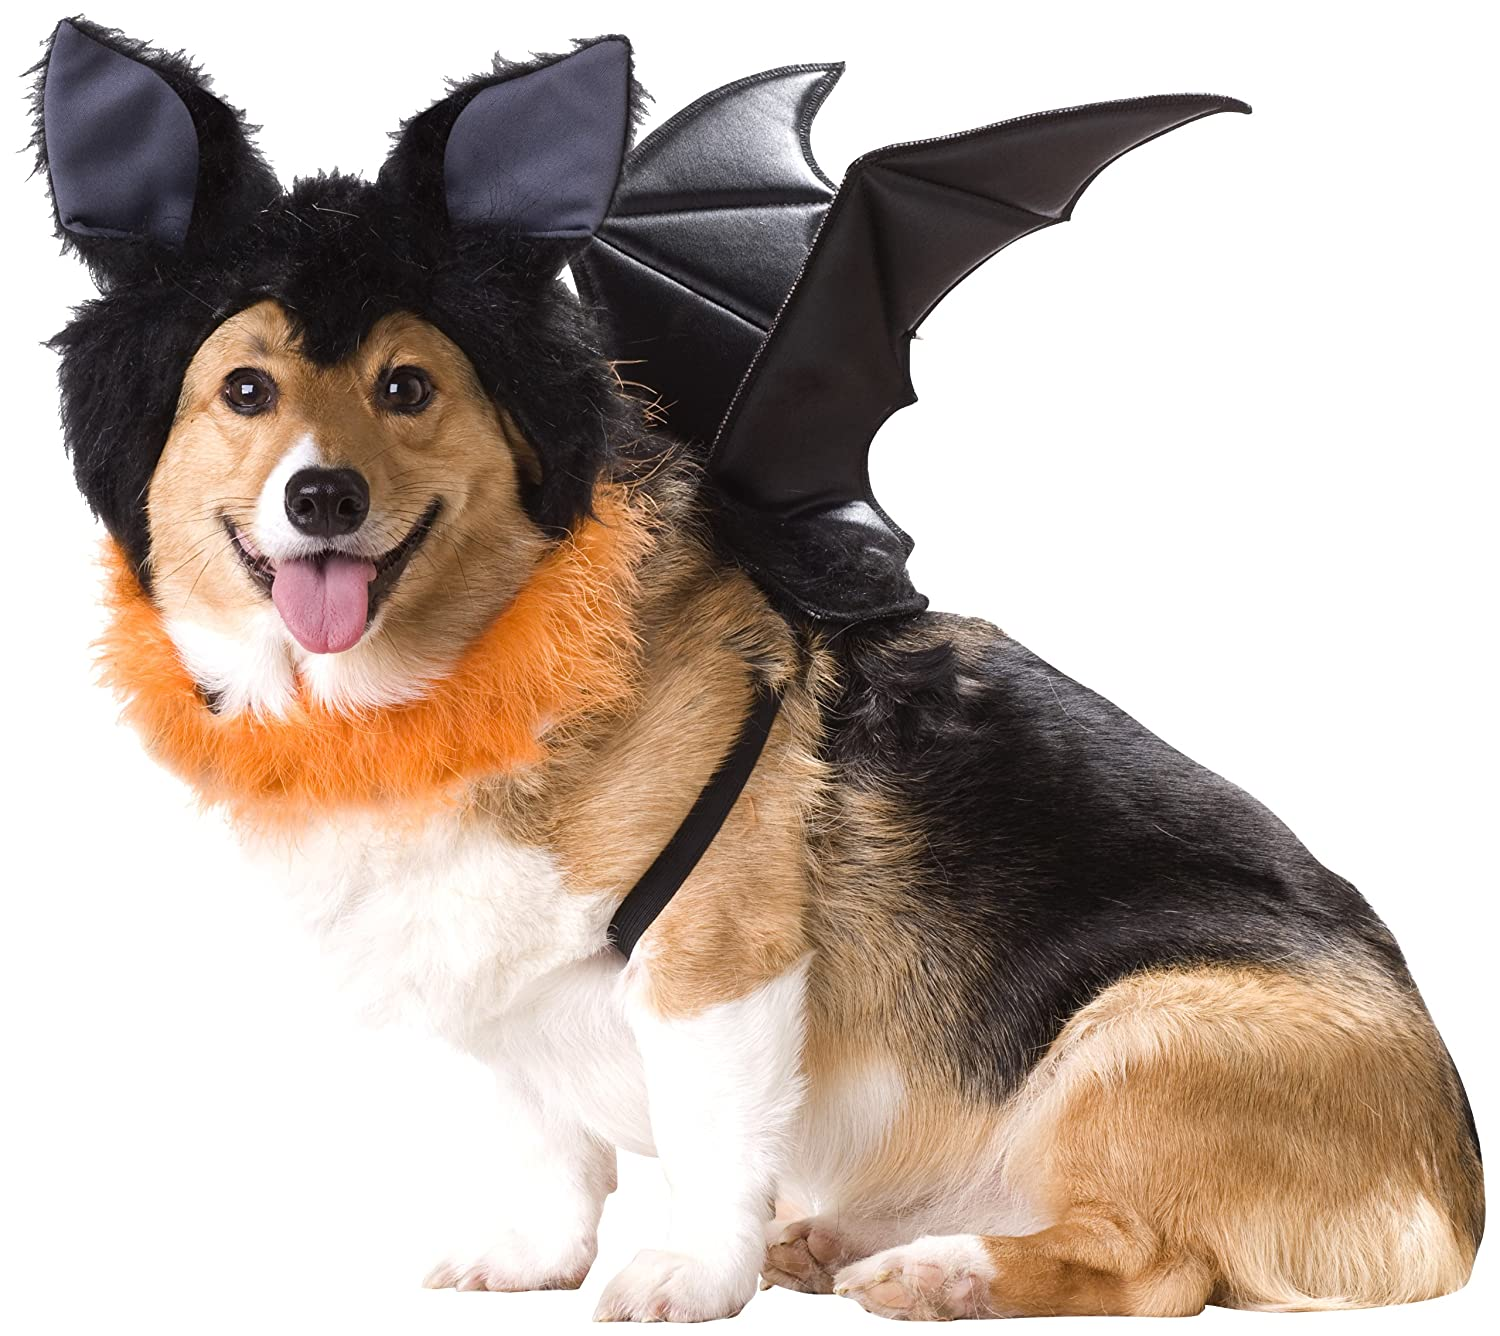 Amazon.com  Animal Planet Bat Dog Costume Small  Pet Costumes  Pet Supplies  sc 1 st  Amazon.com : halloween costumes animal  - Germanpascual.Com